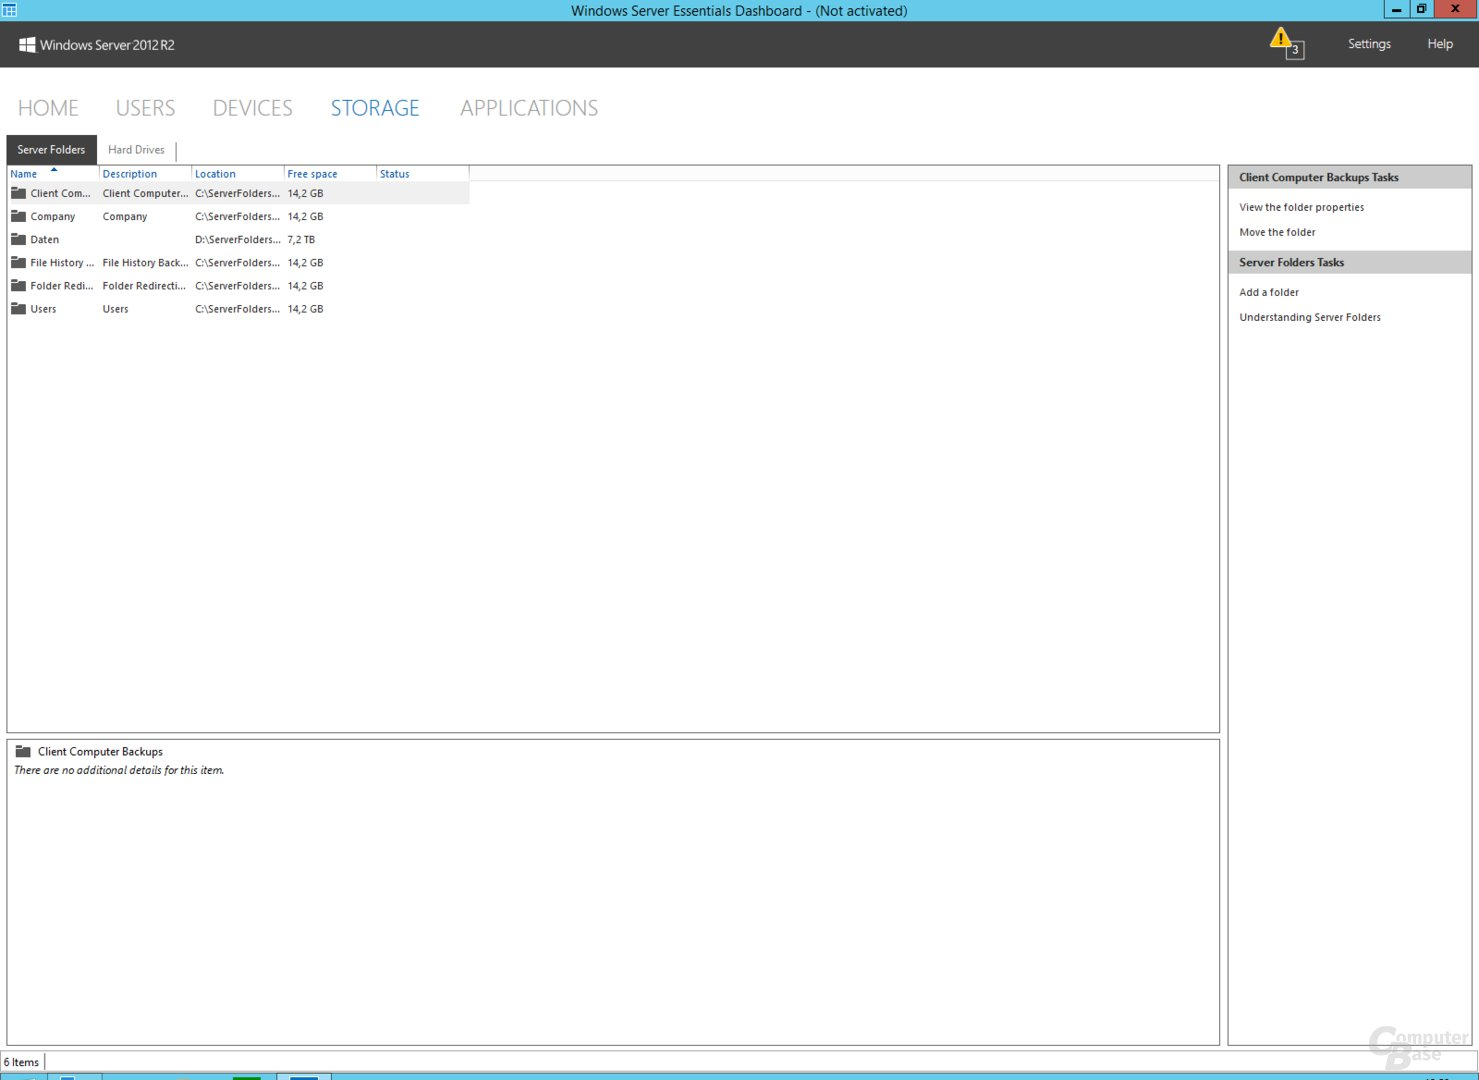 Windows Storage Server 2012 R2 Essentials: Dashboard zur Konfiguration